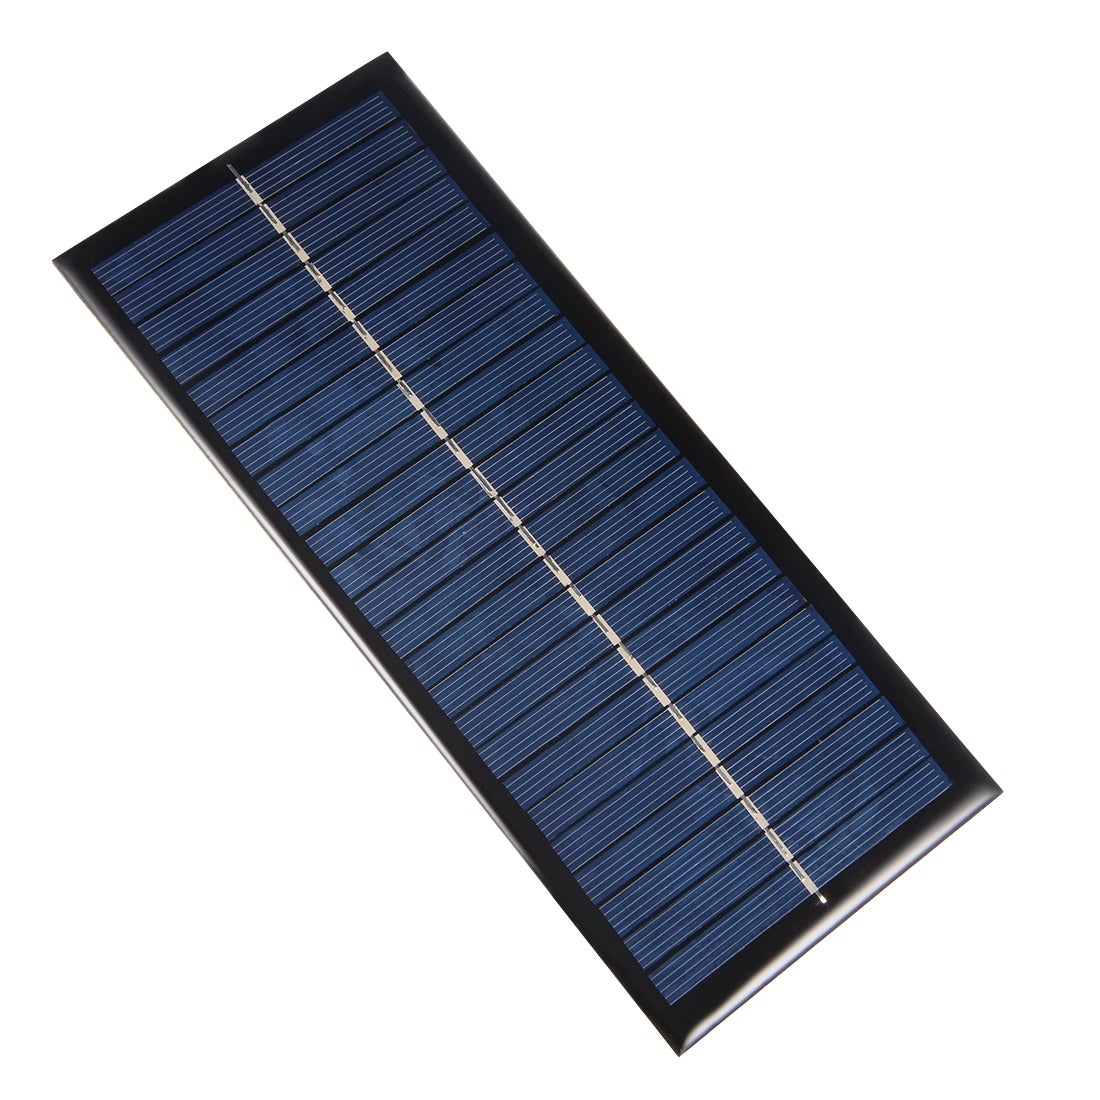 2.5W 12V Micro Solar Panel Module DIY Polysilicon for Phone Toys Charger